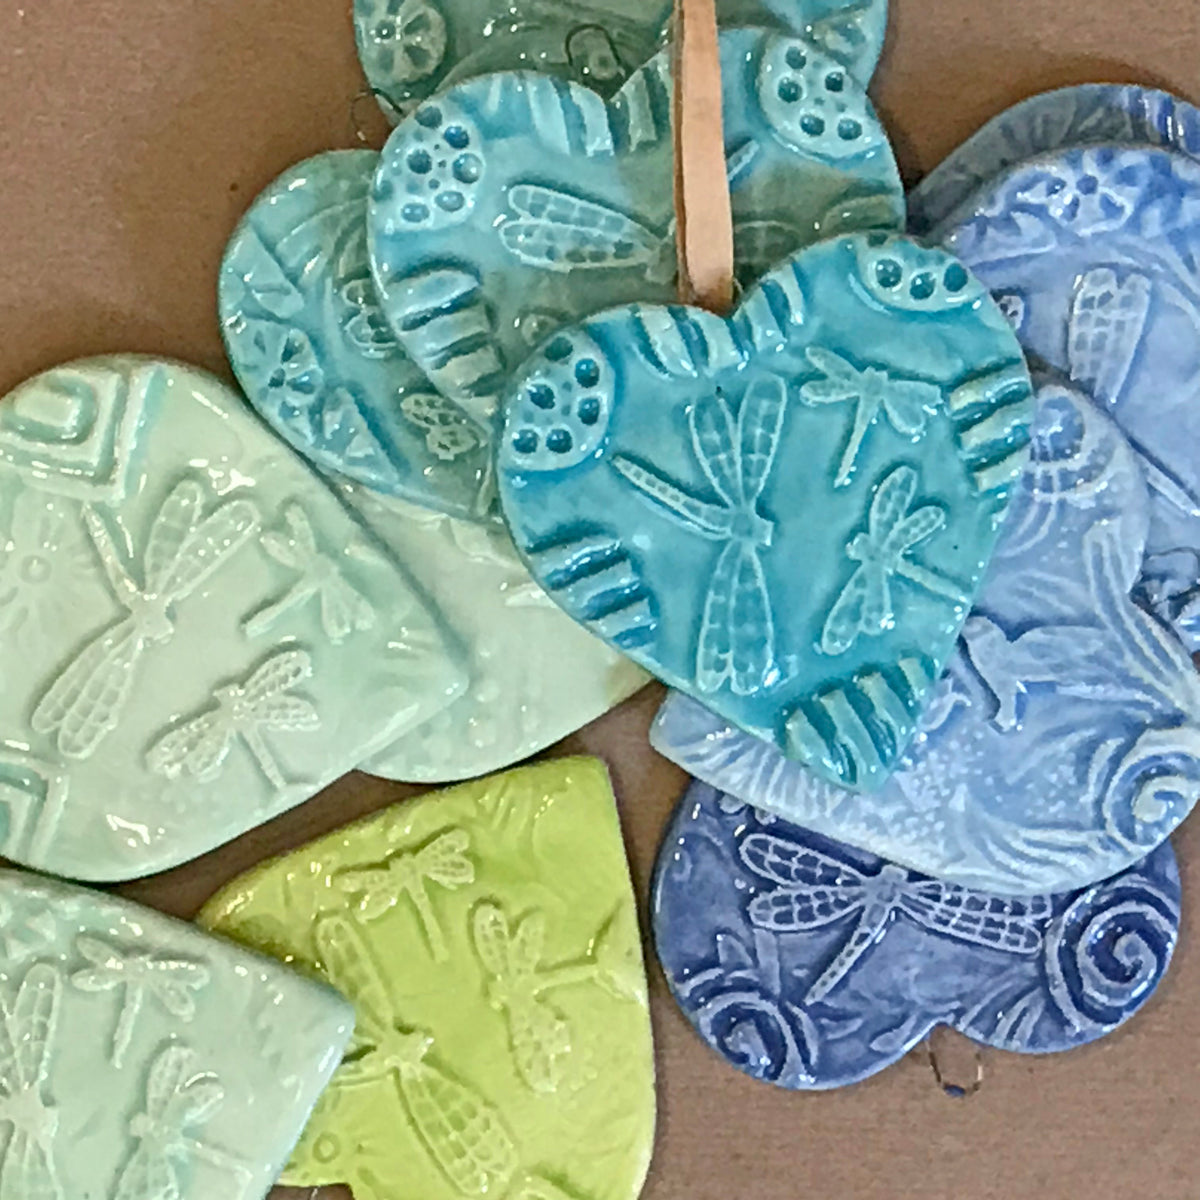 Showing the colors of our dragonfly heart-shaped ornamanets.